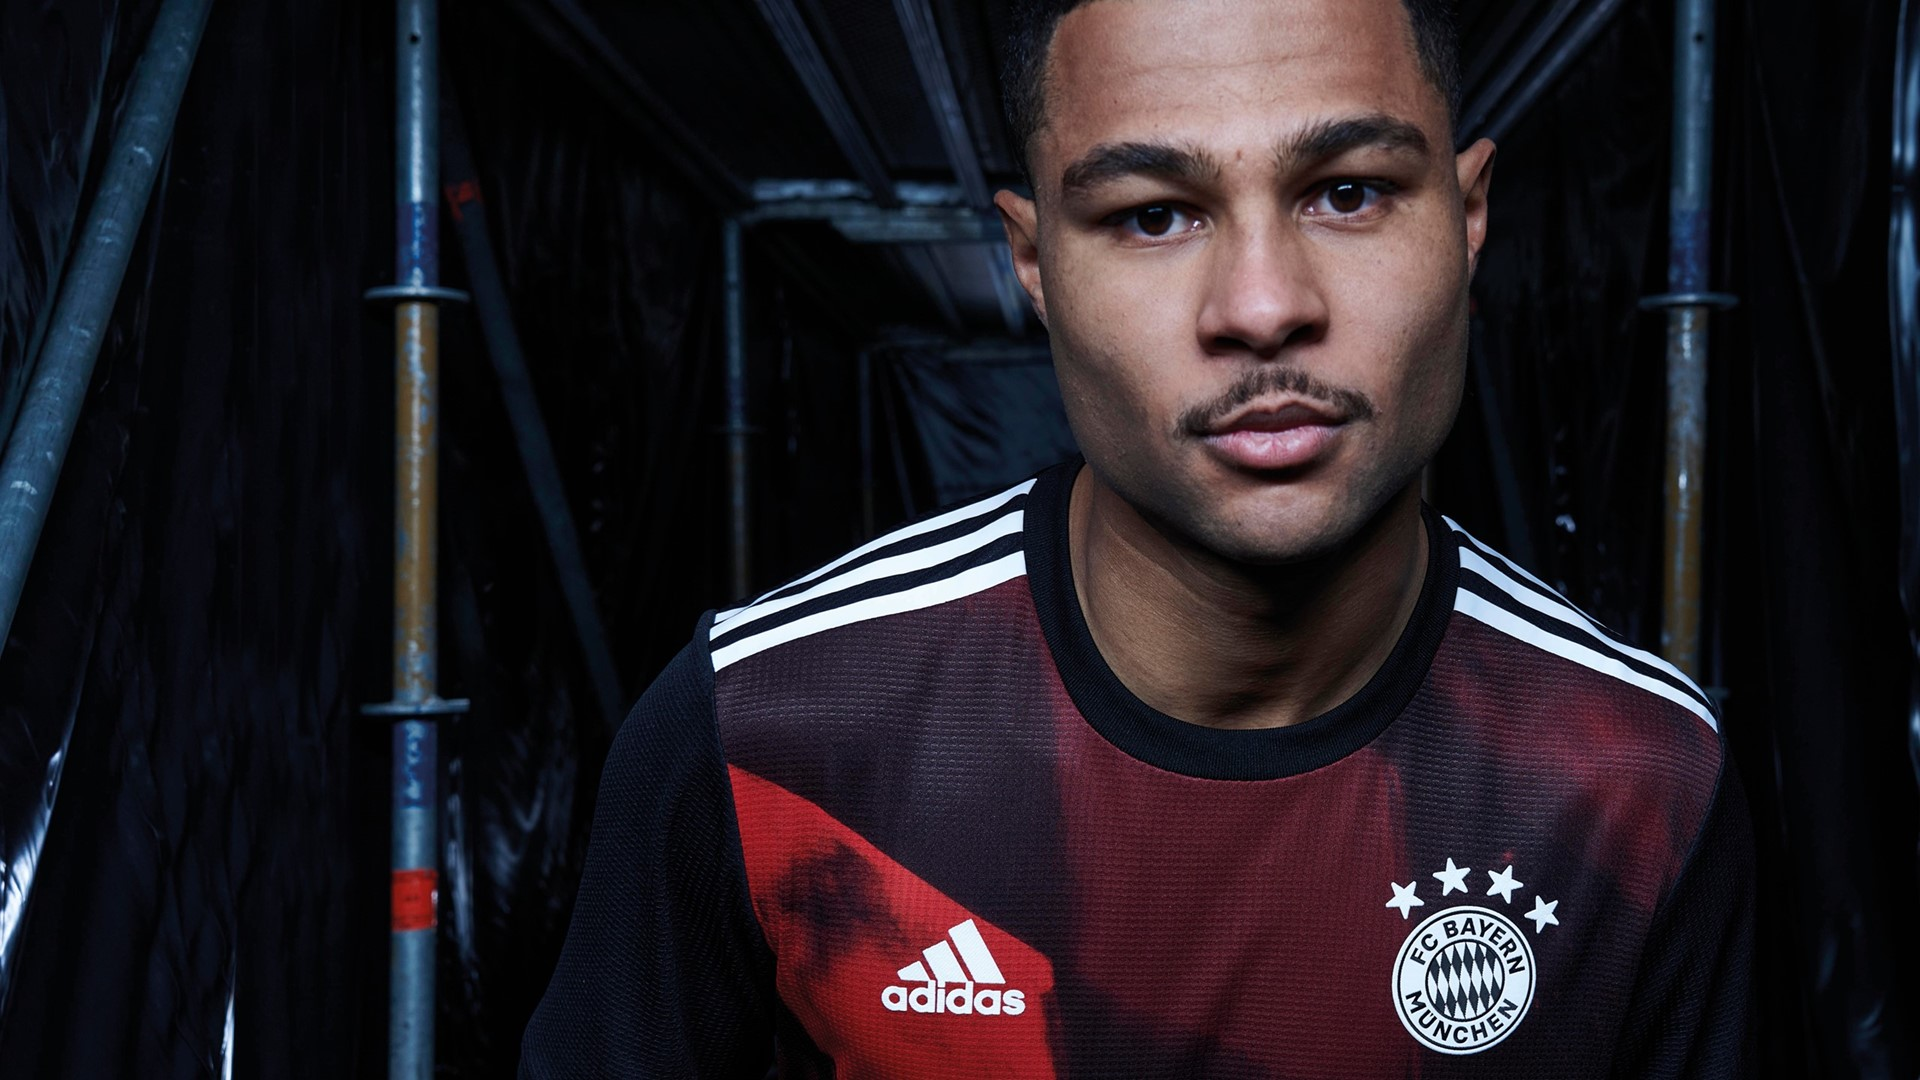 THE FC BAYERN MUNICH THIRD KIT FOR SEASON CREATED TO INSPIRE THE TEAM IN THE UEFA CHAMPIONS LEAGUE